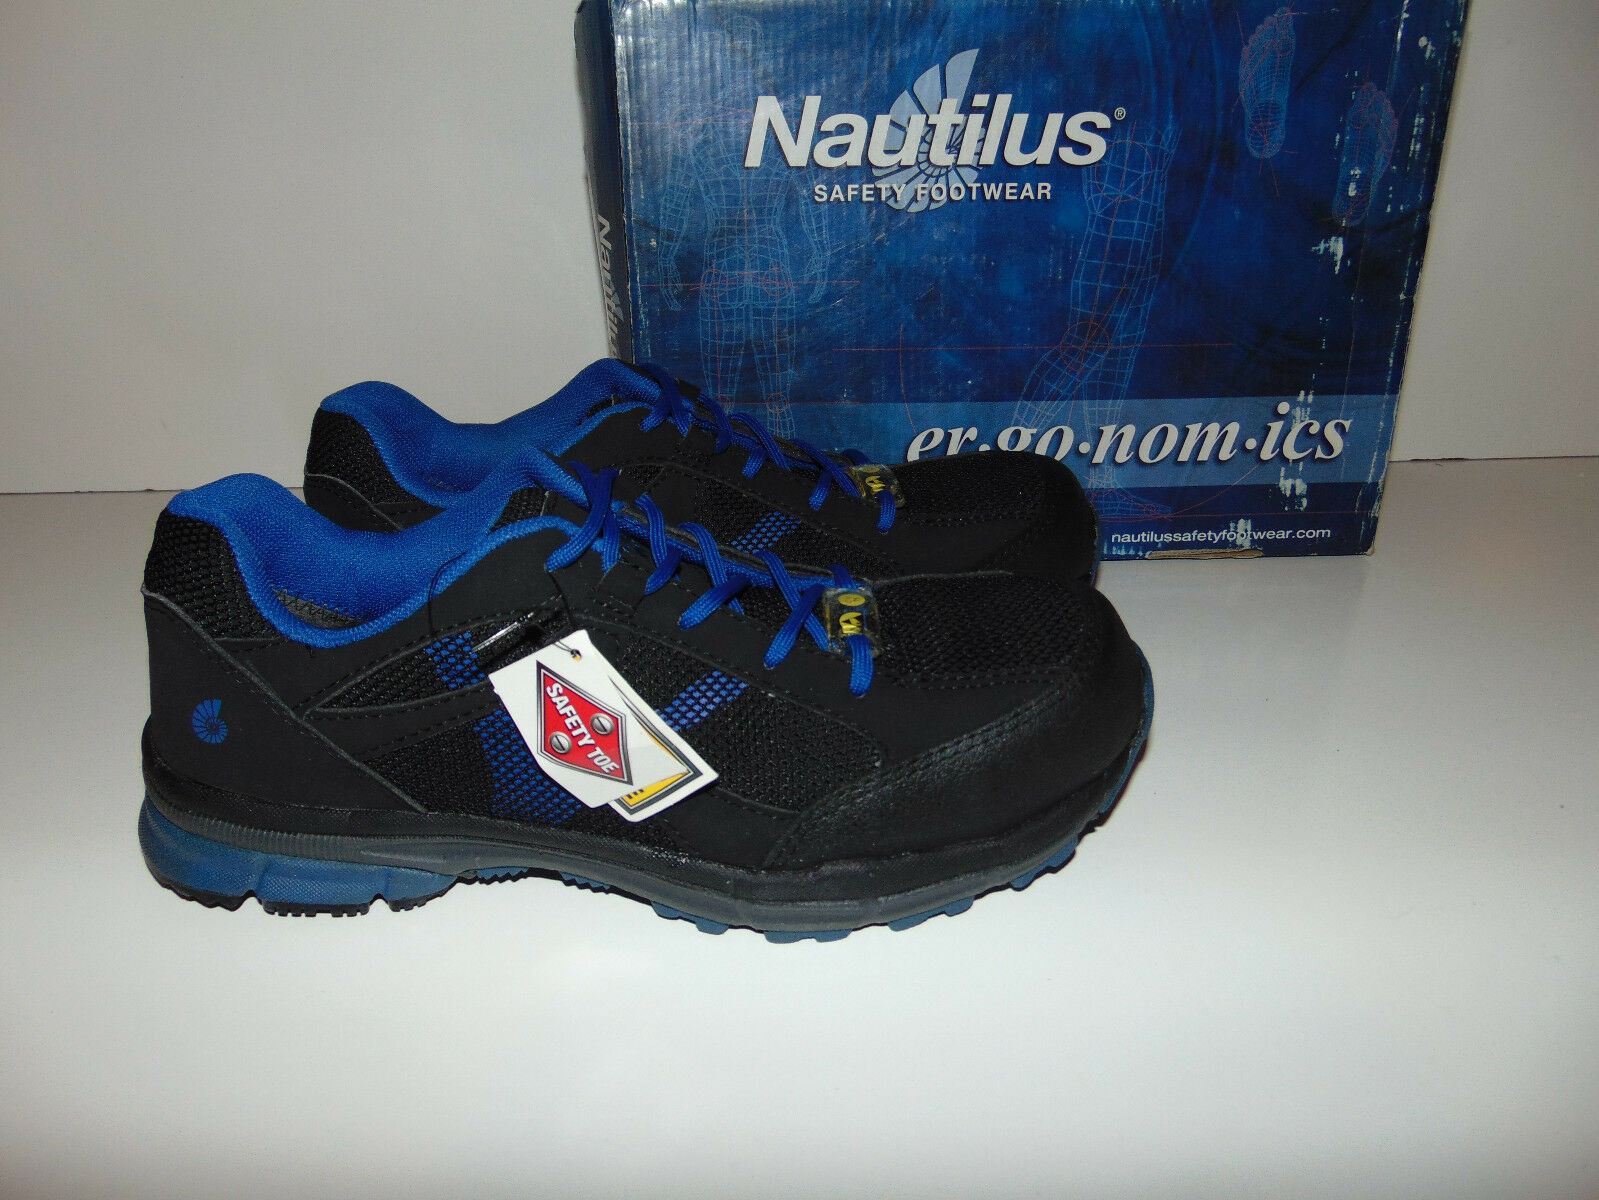 77e880dd2833 Nautilus Men s Blue Athletic Work Shoes Shoes Shoes - STEEL Toe - N1731 ALL  SIZES     f818dd